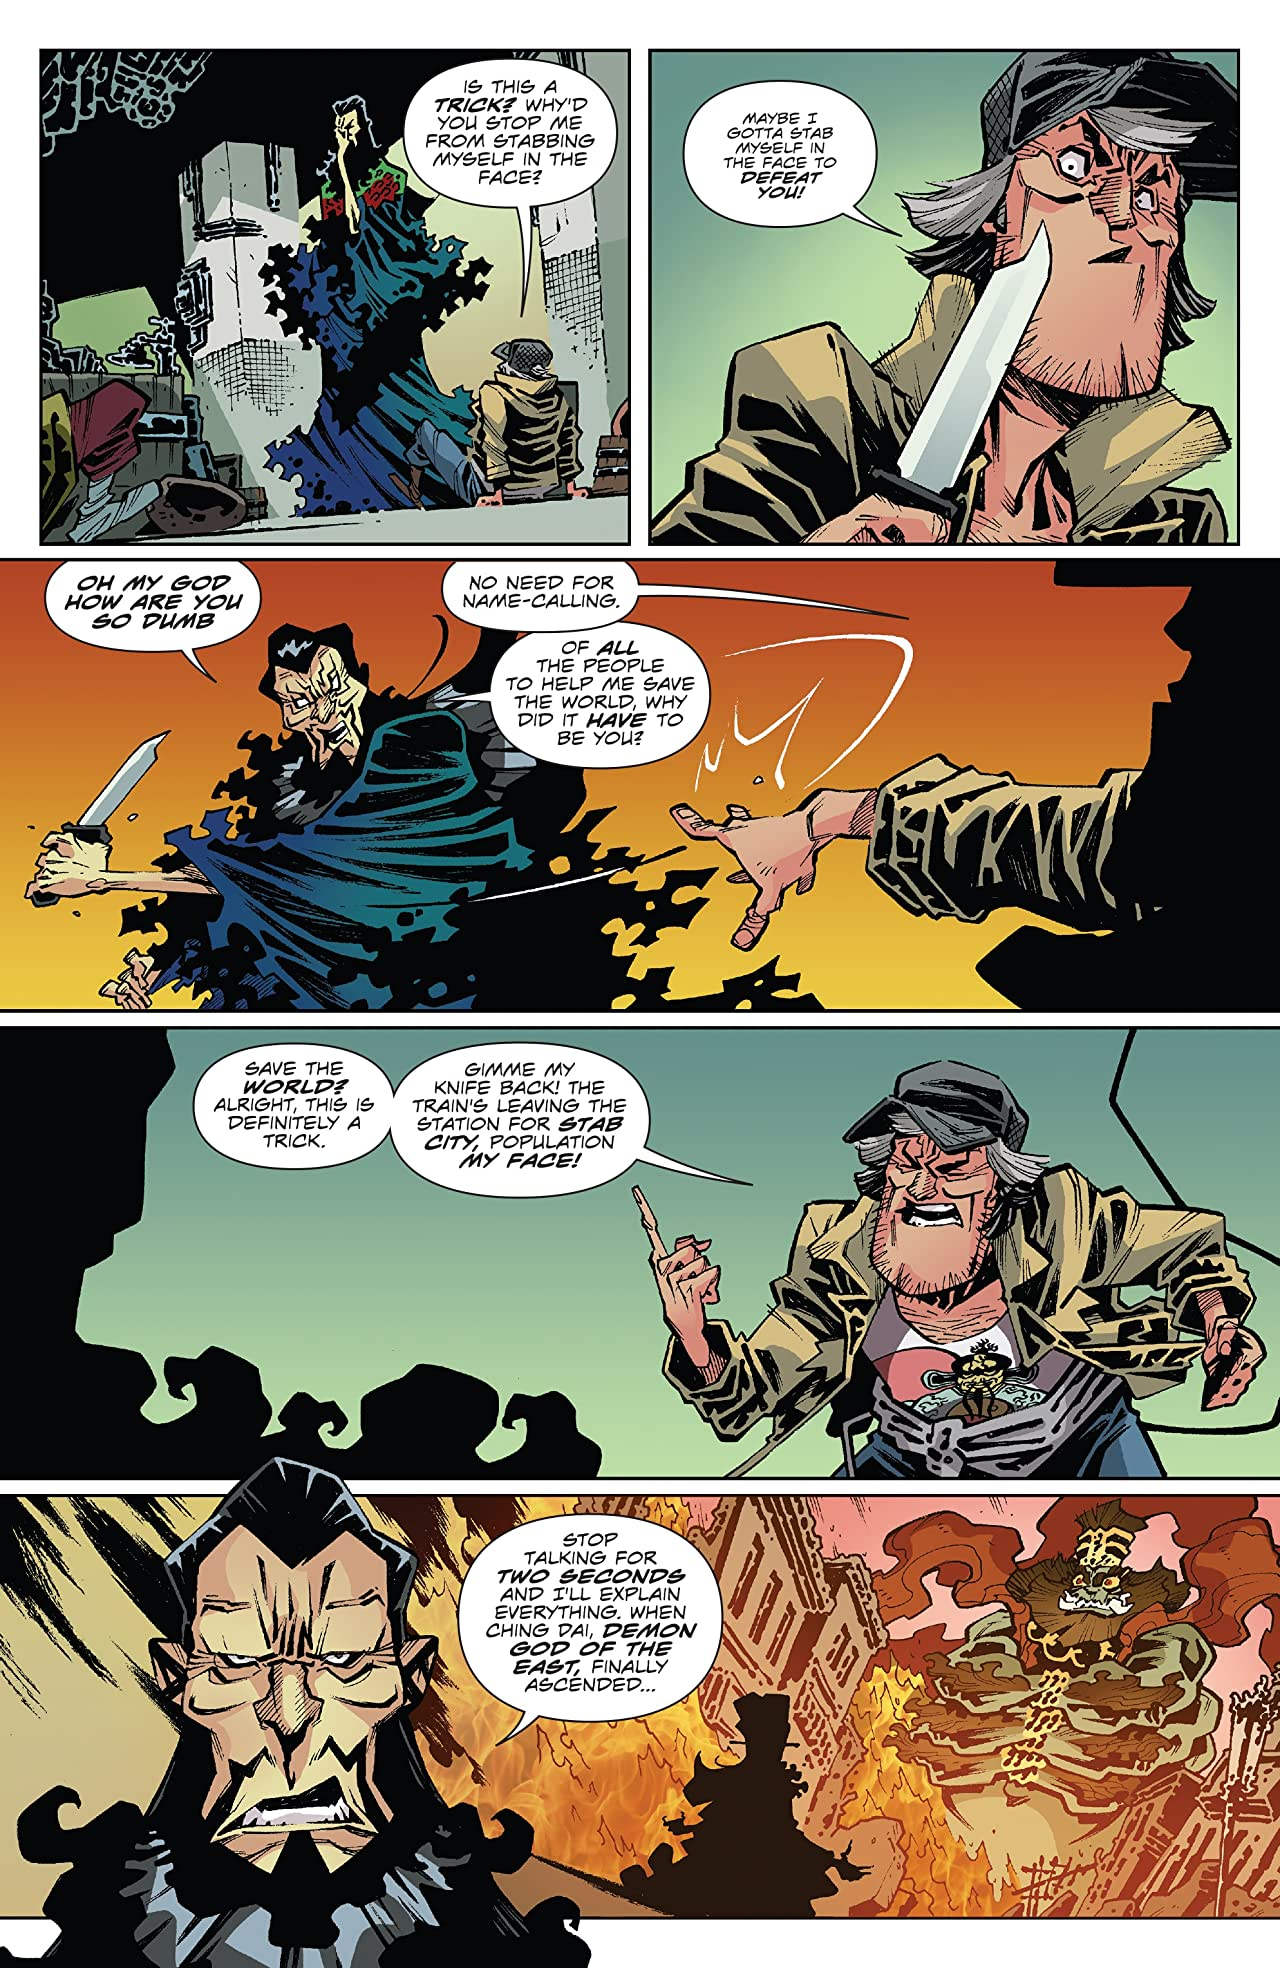 Big Trouble in Little China: Old Man Jack #2